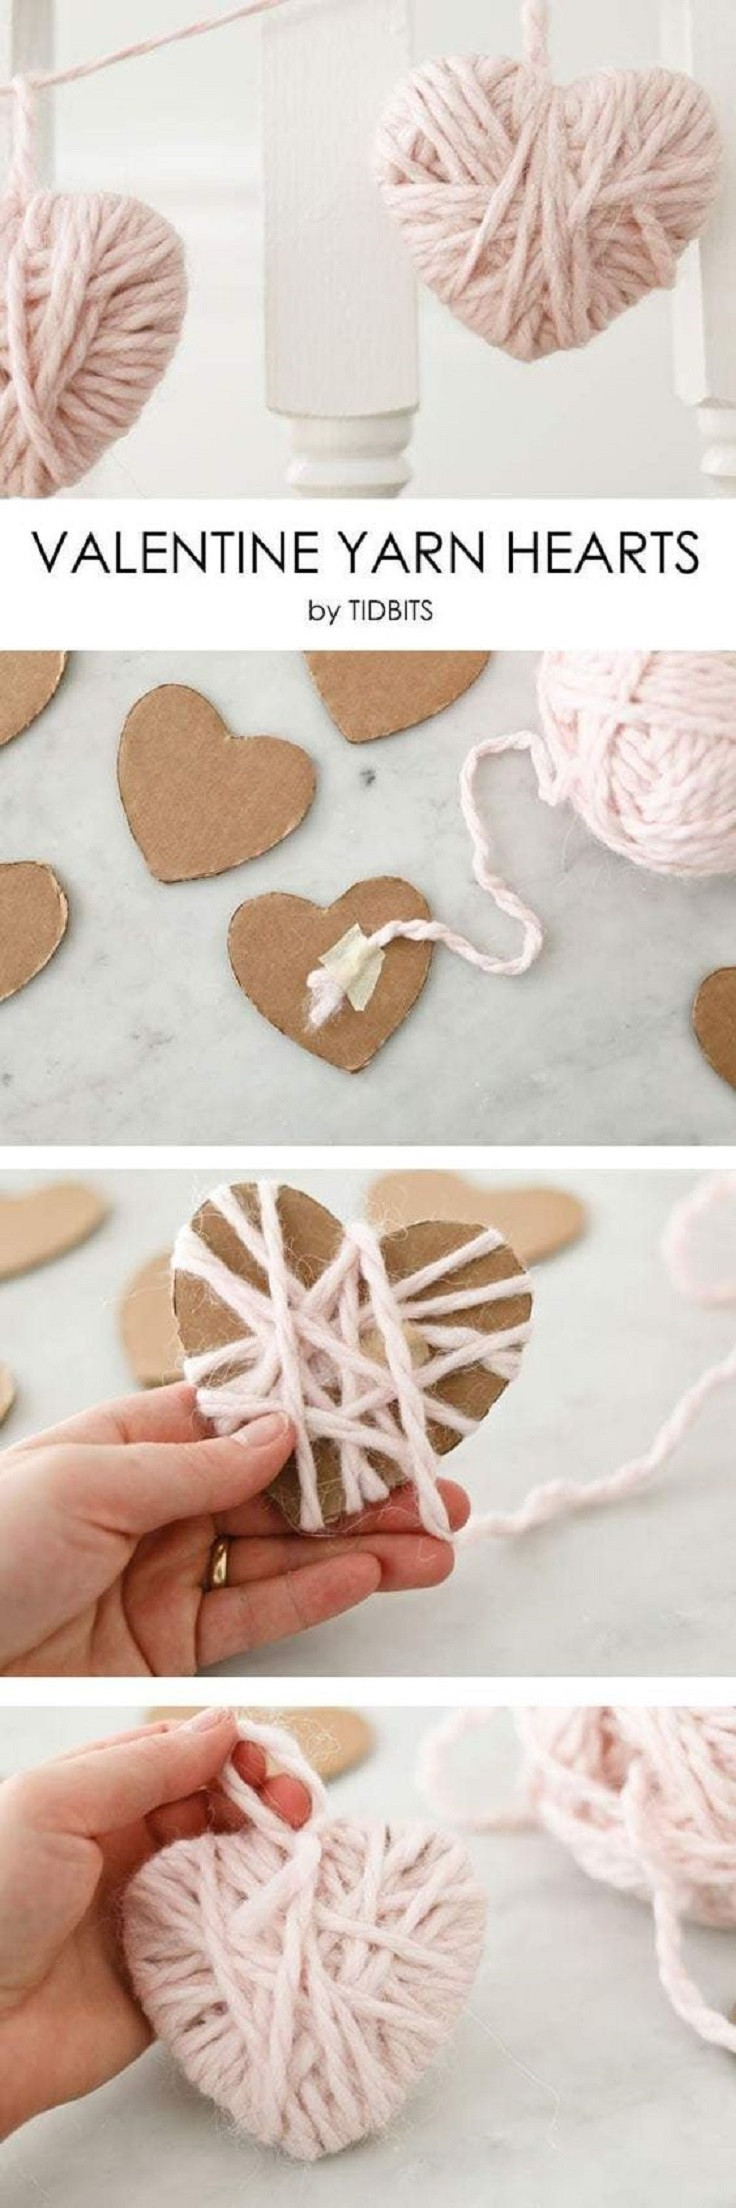 Heart Crafts For Adults  11 Pretty Little Valentine s Day Crafts for Both Kids and